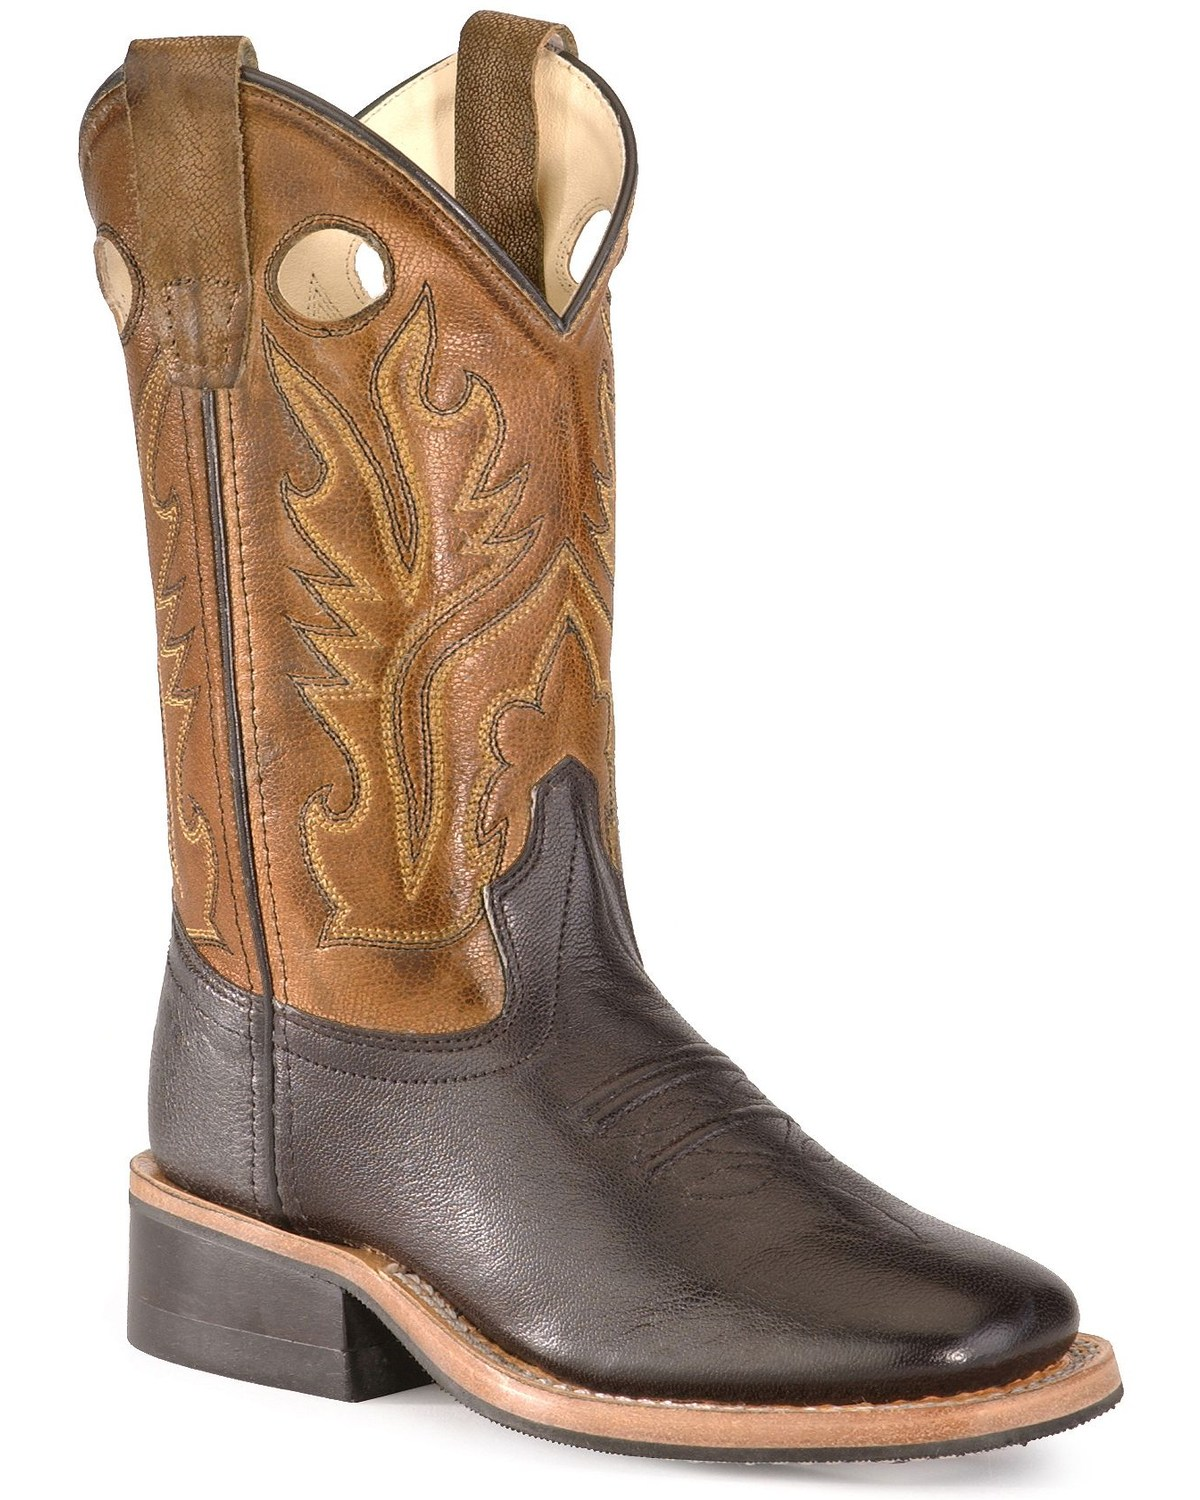 Old West Toddlers' Corona Cowboy Boots